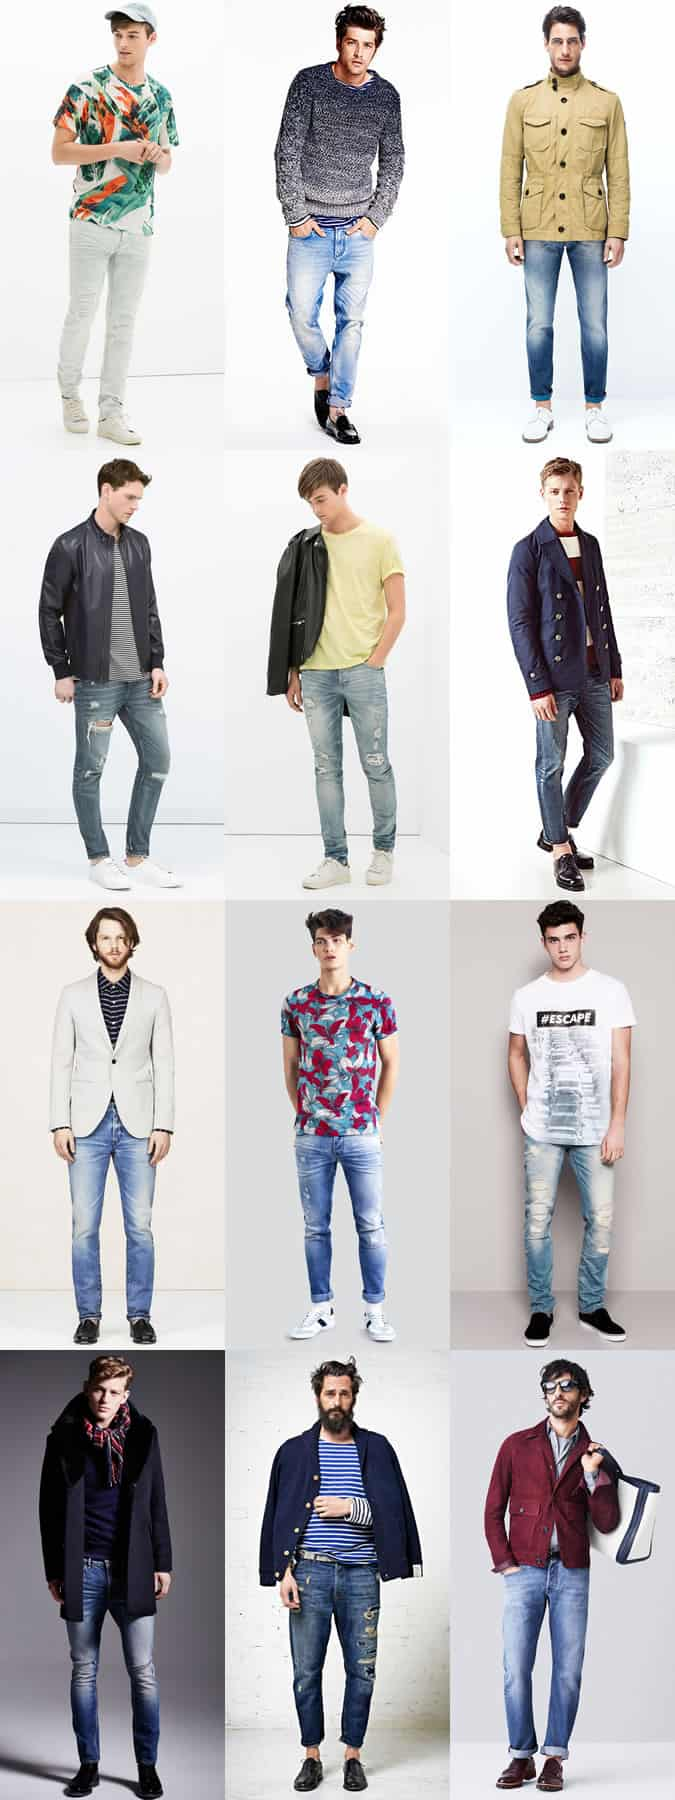 Men's Faded, Distressed, Ripped and Light Wash Jeans - Spring/Summer Outfit Inspiration Lookbook